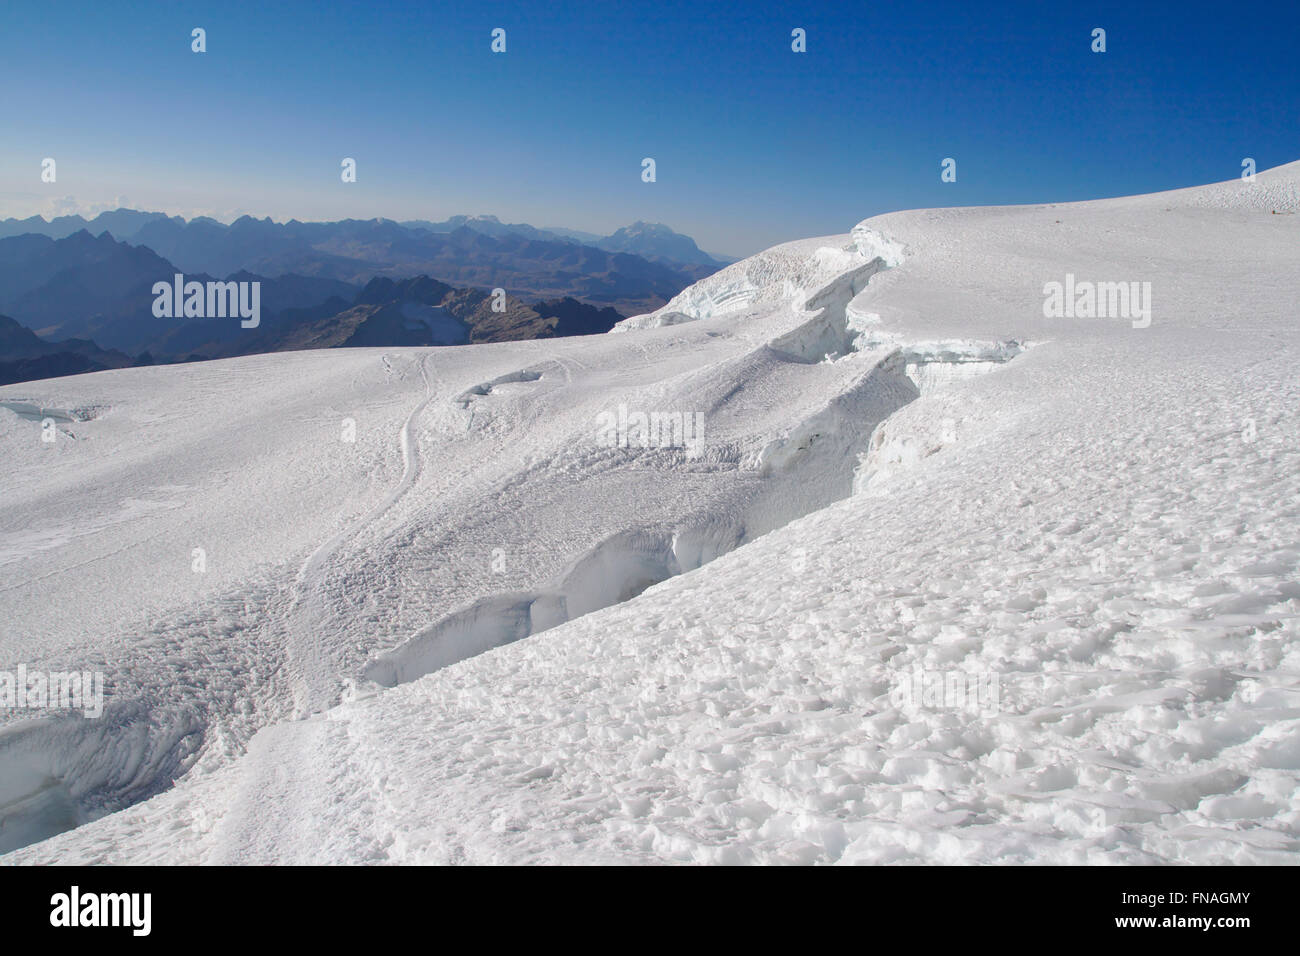 View from the glacier of Huayna Potosi over the Andes toward Illimani, Bolivia Stock Photo